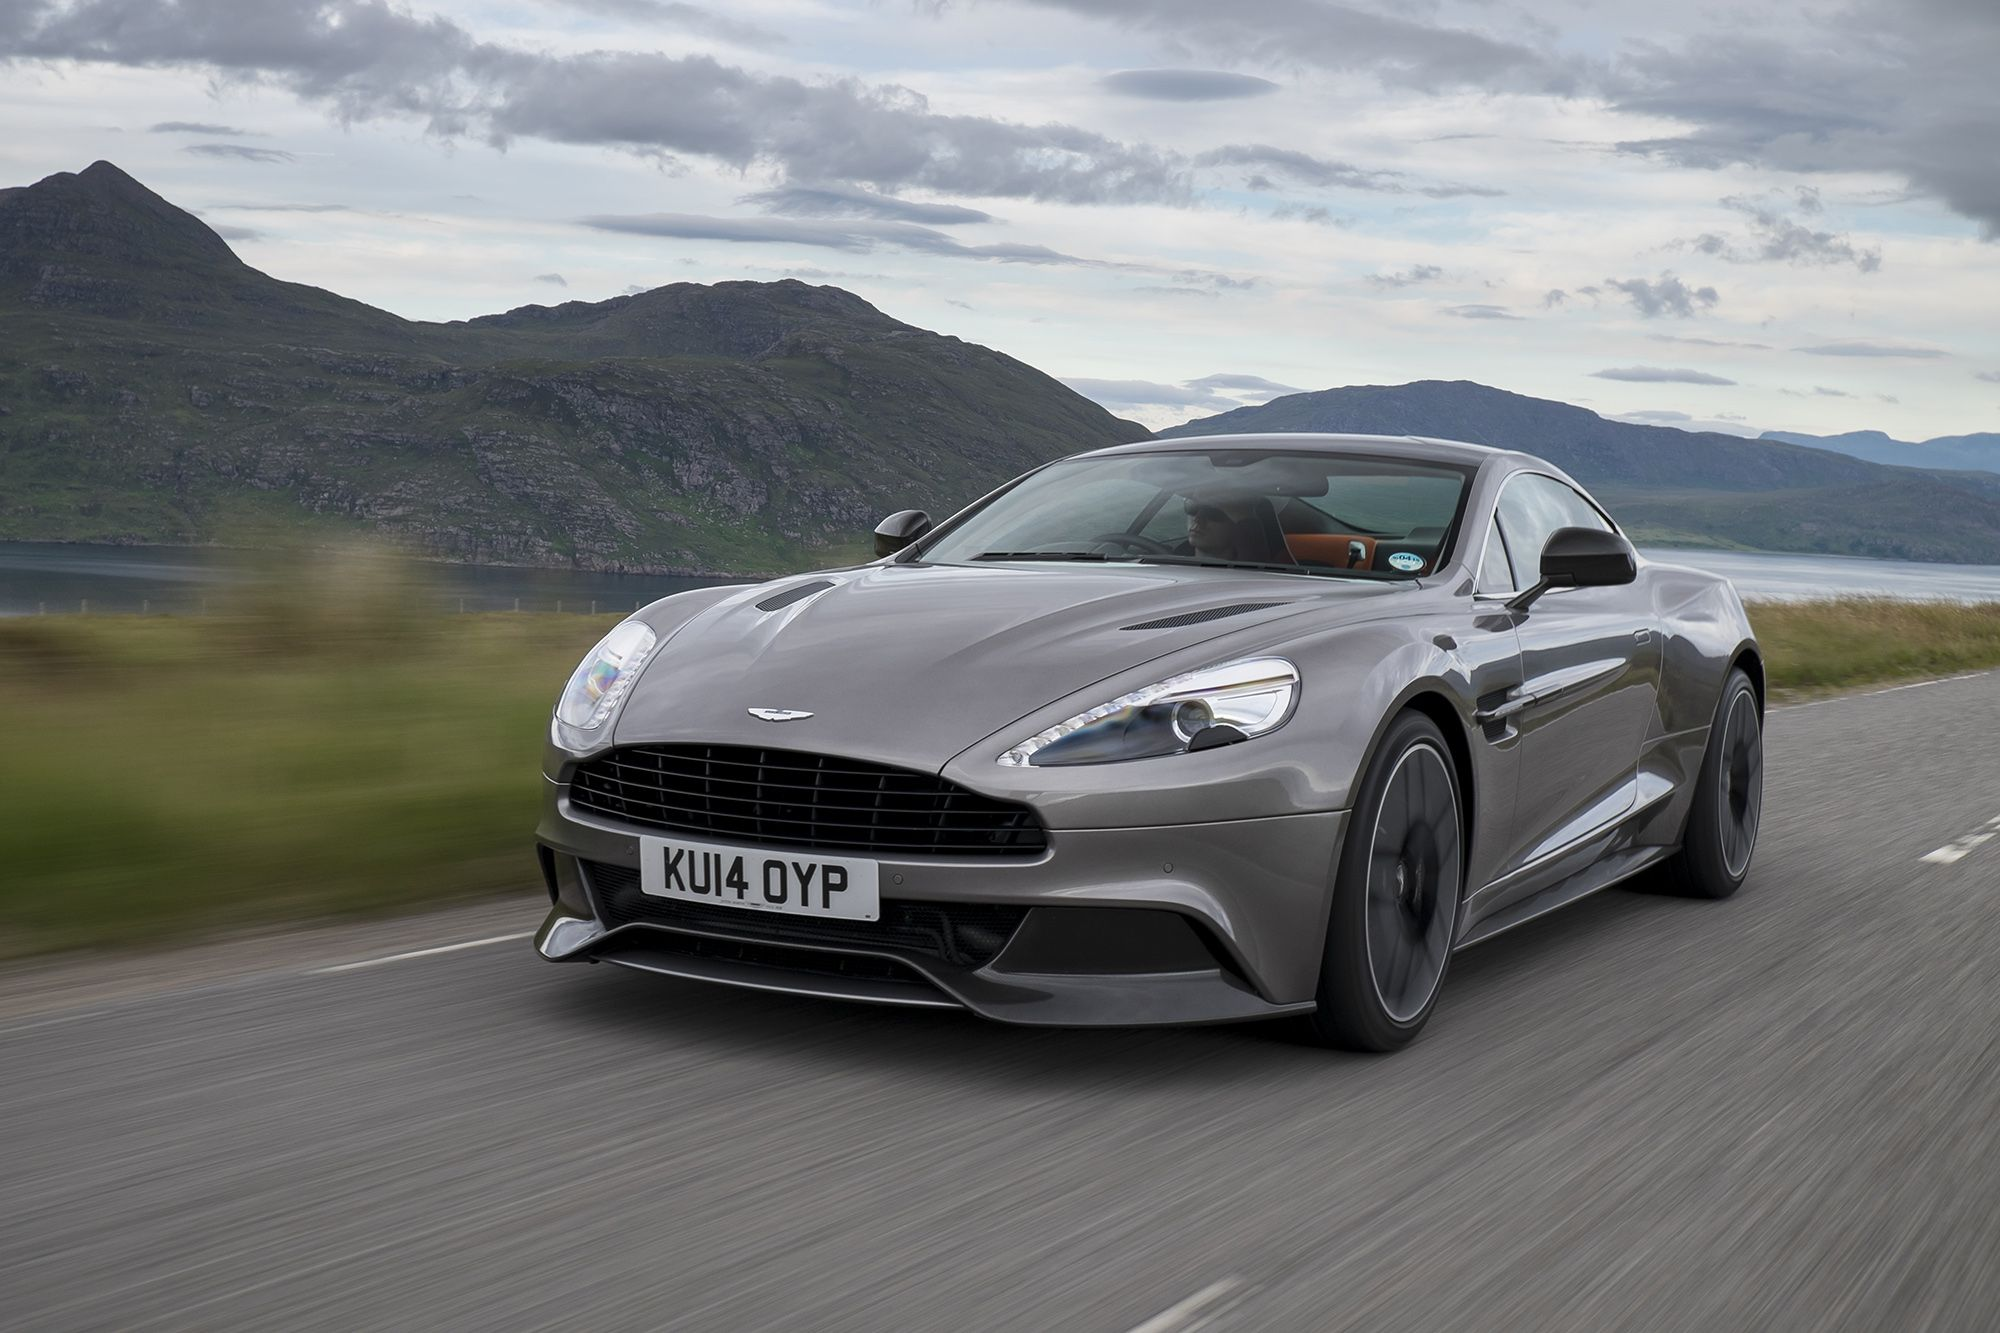 Aston Martin V12 Vanquish The Ultimate Grand Tourer Discover more